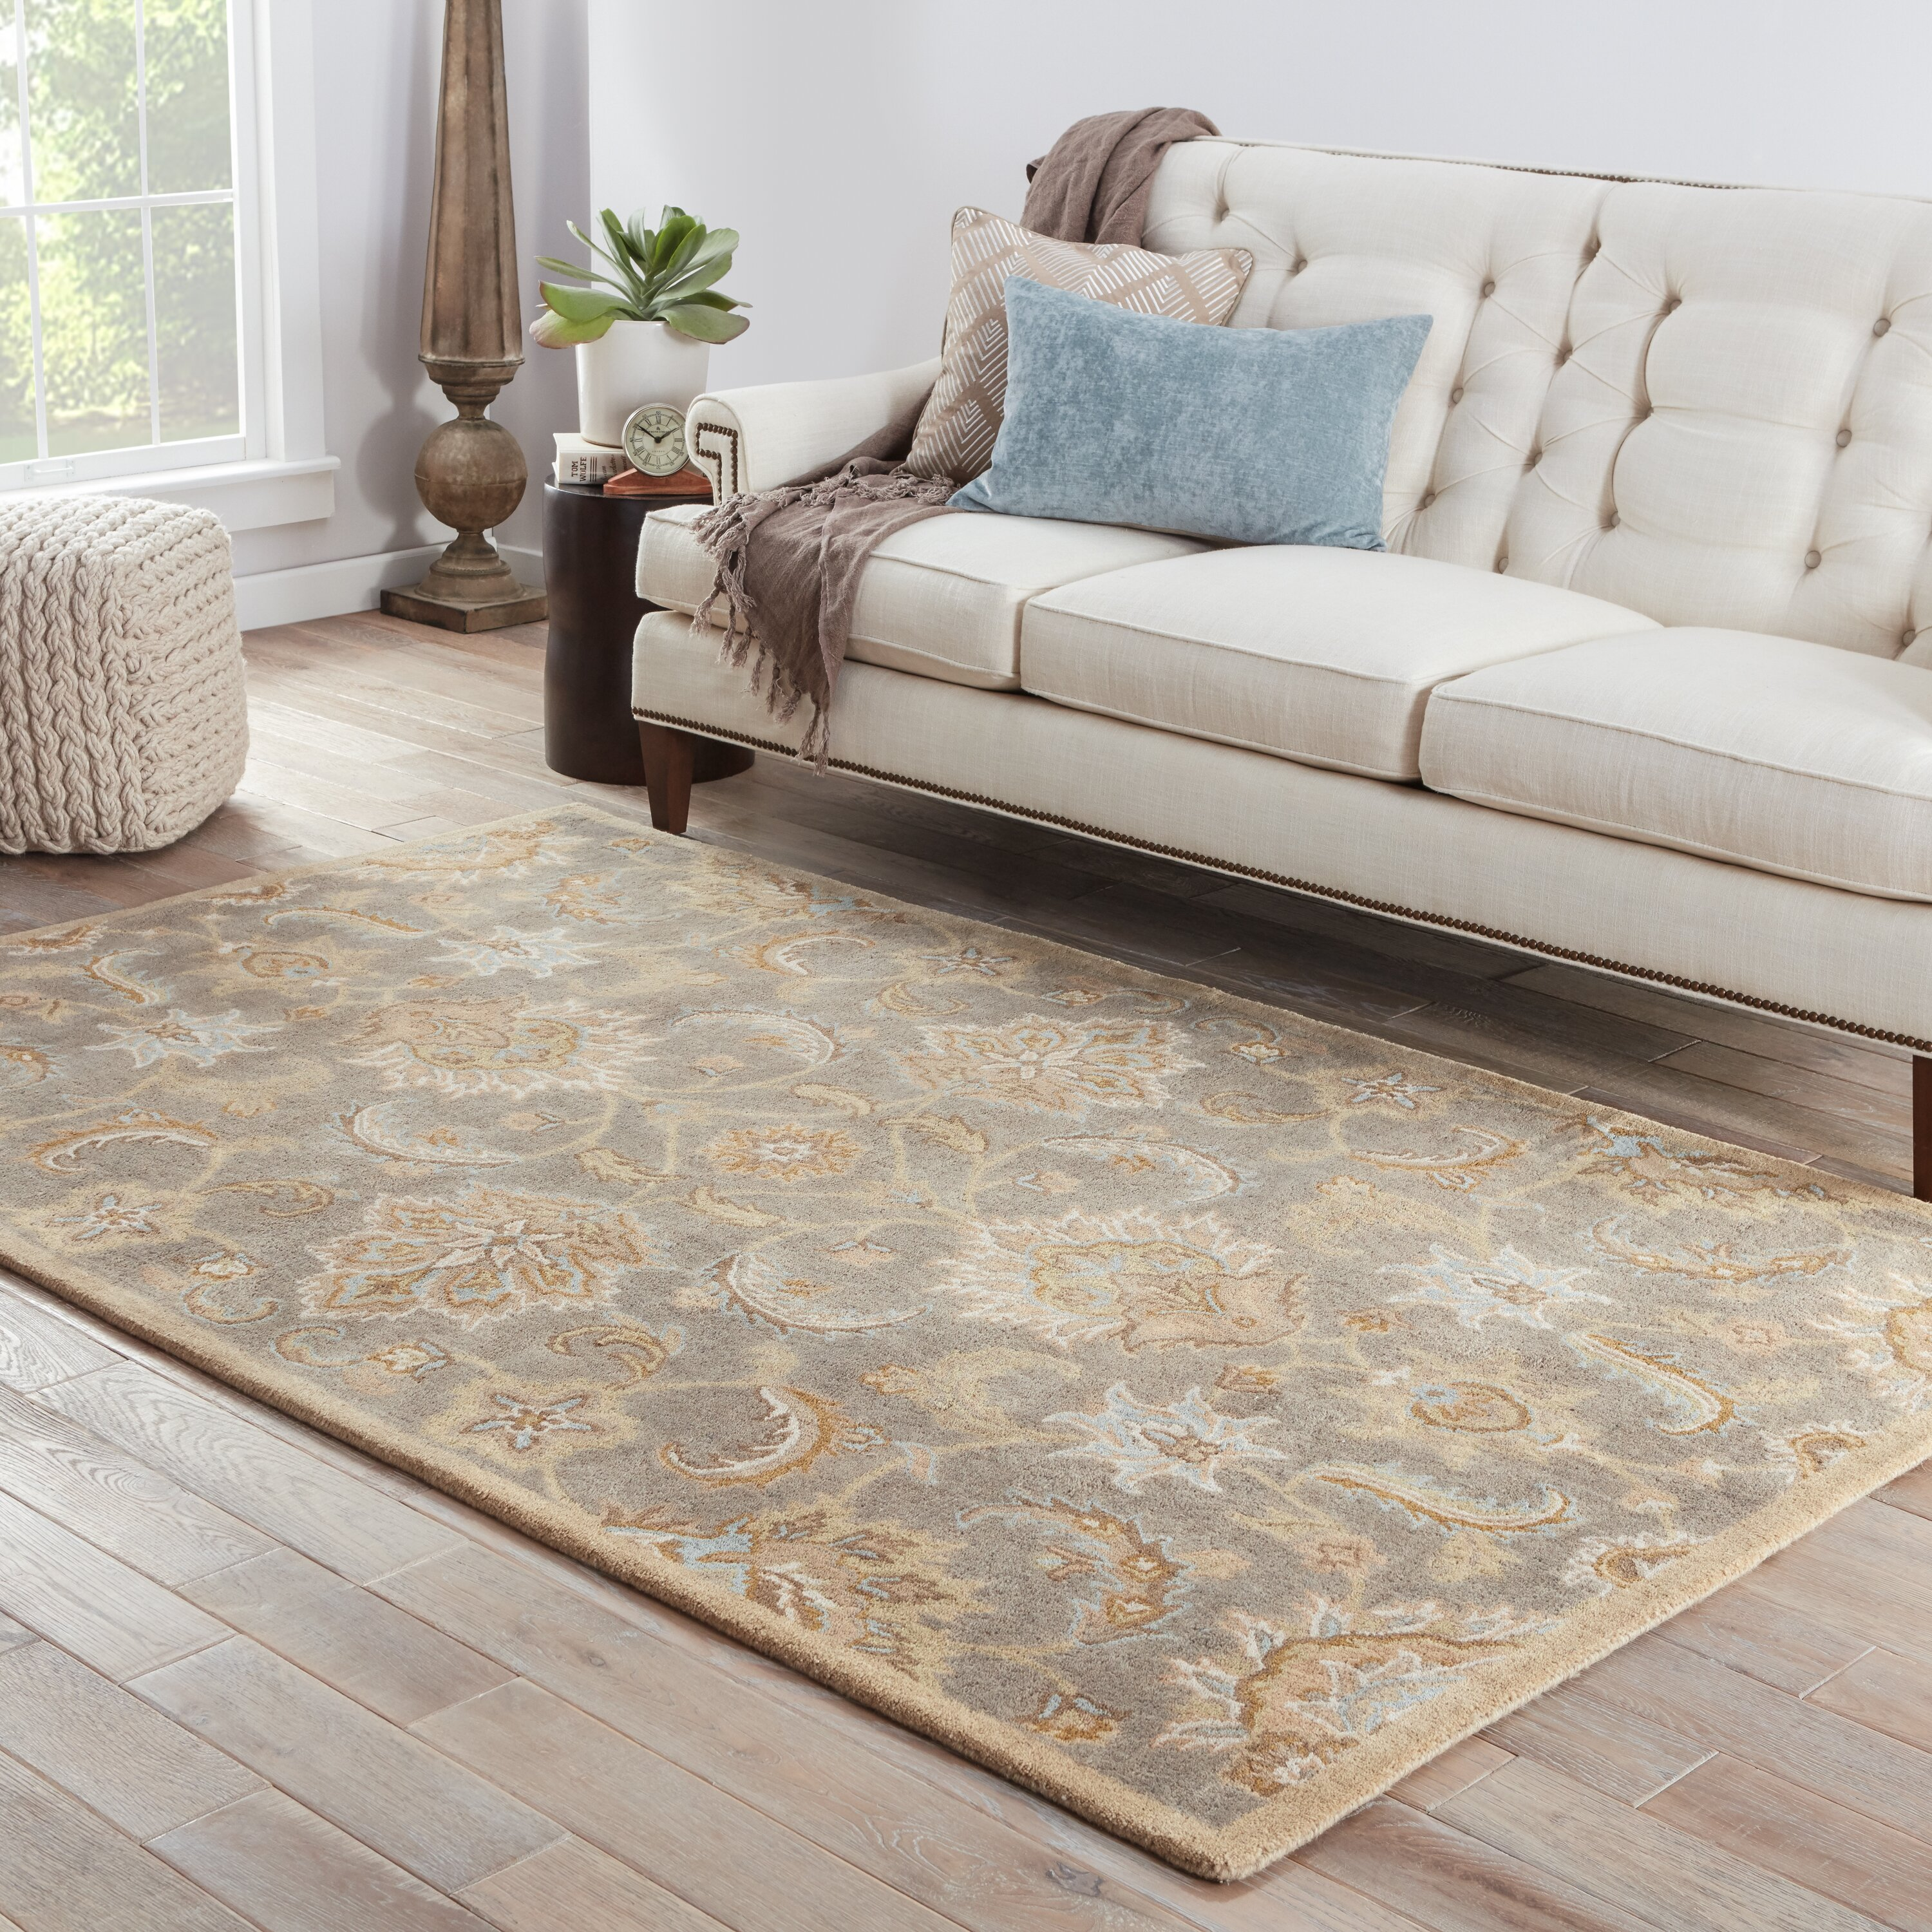 Jaipurliving mythos grey tan area rug reviews for Grey and tan rug